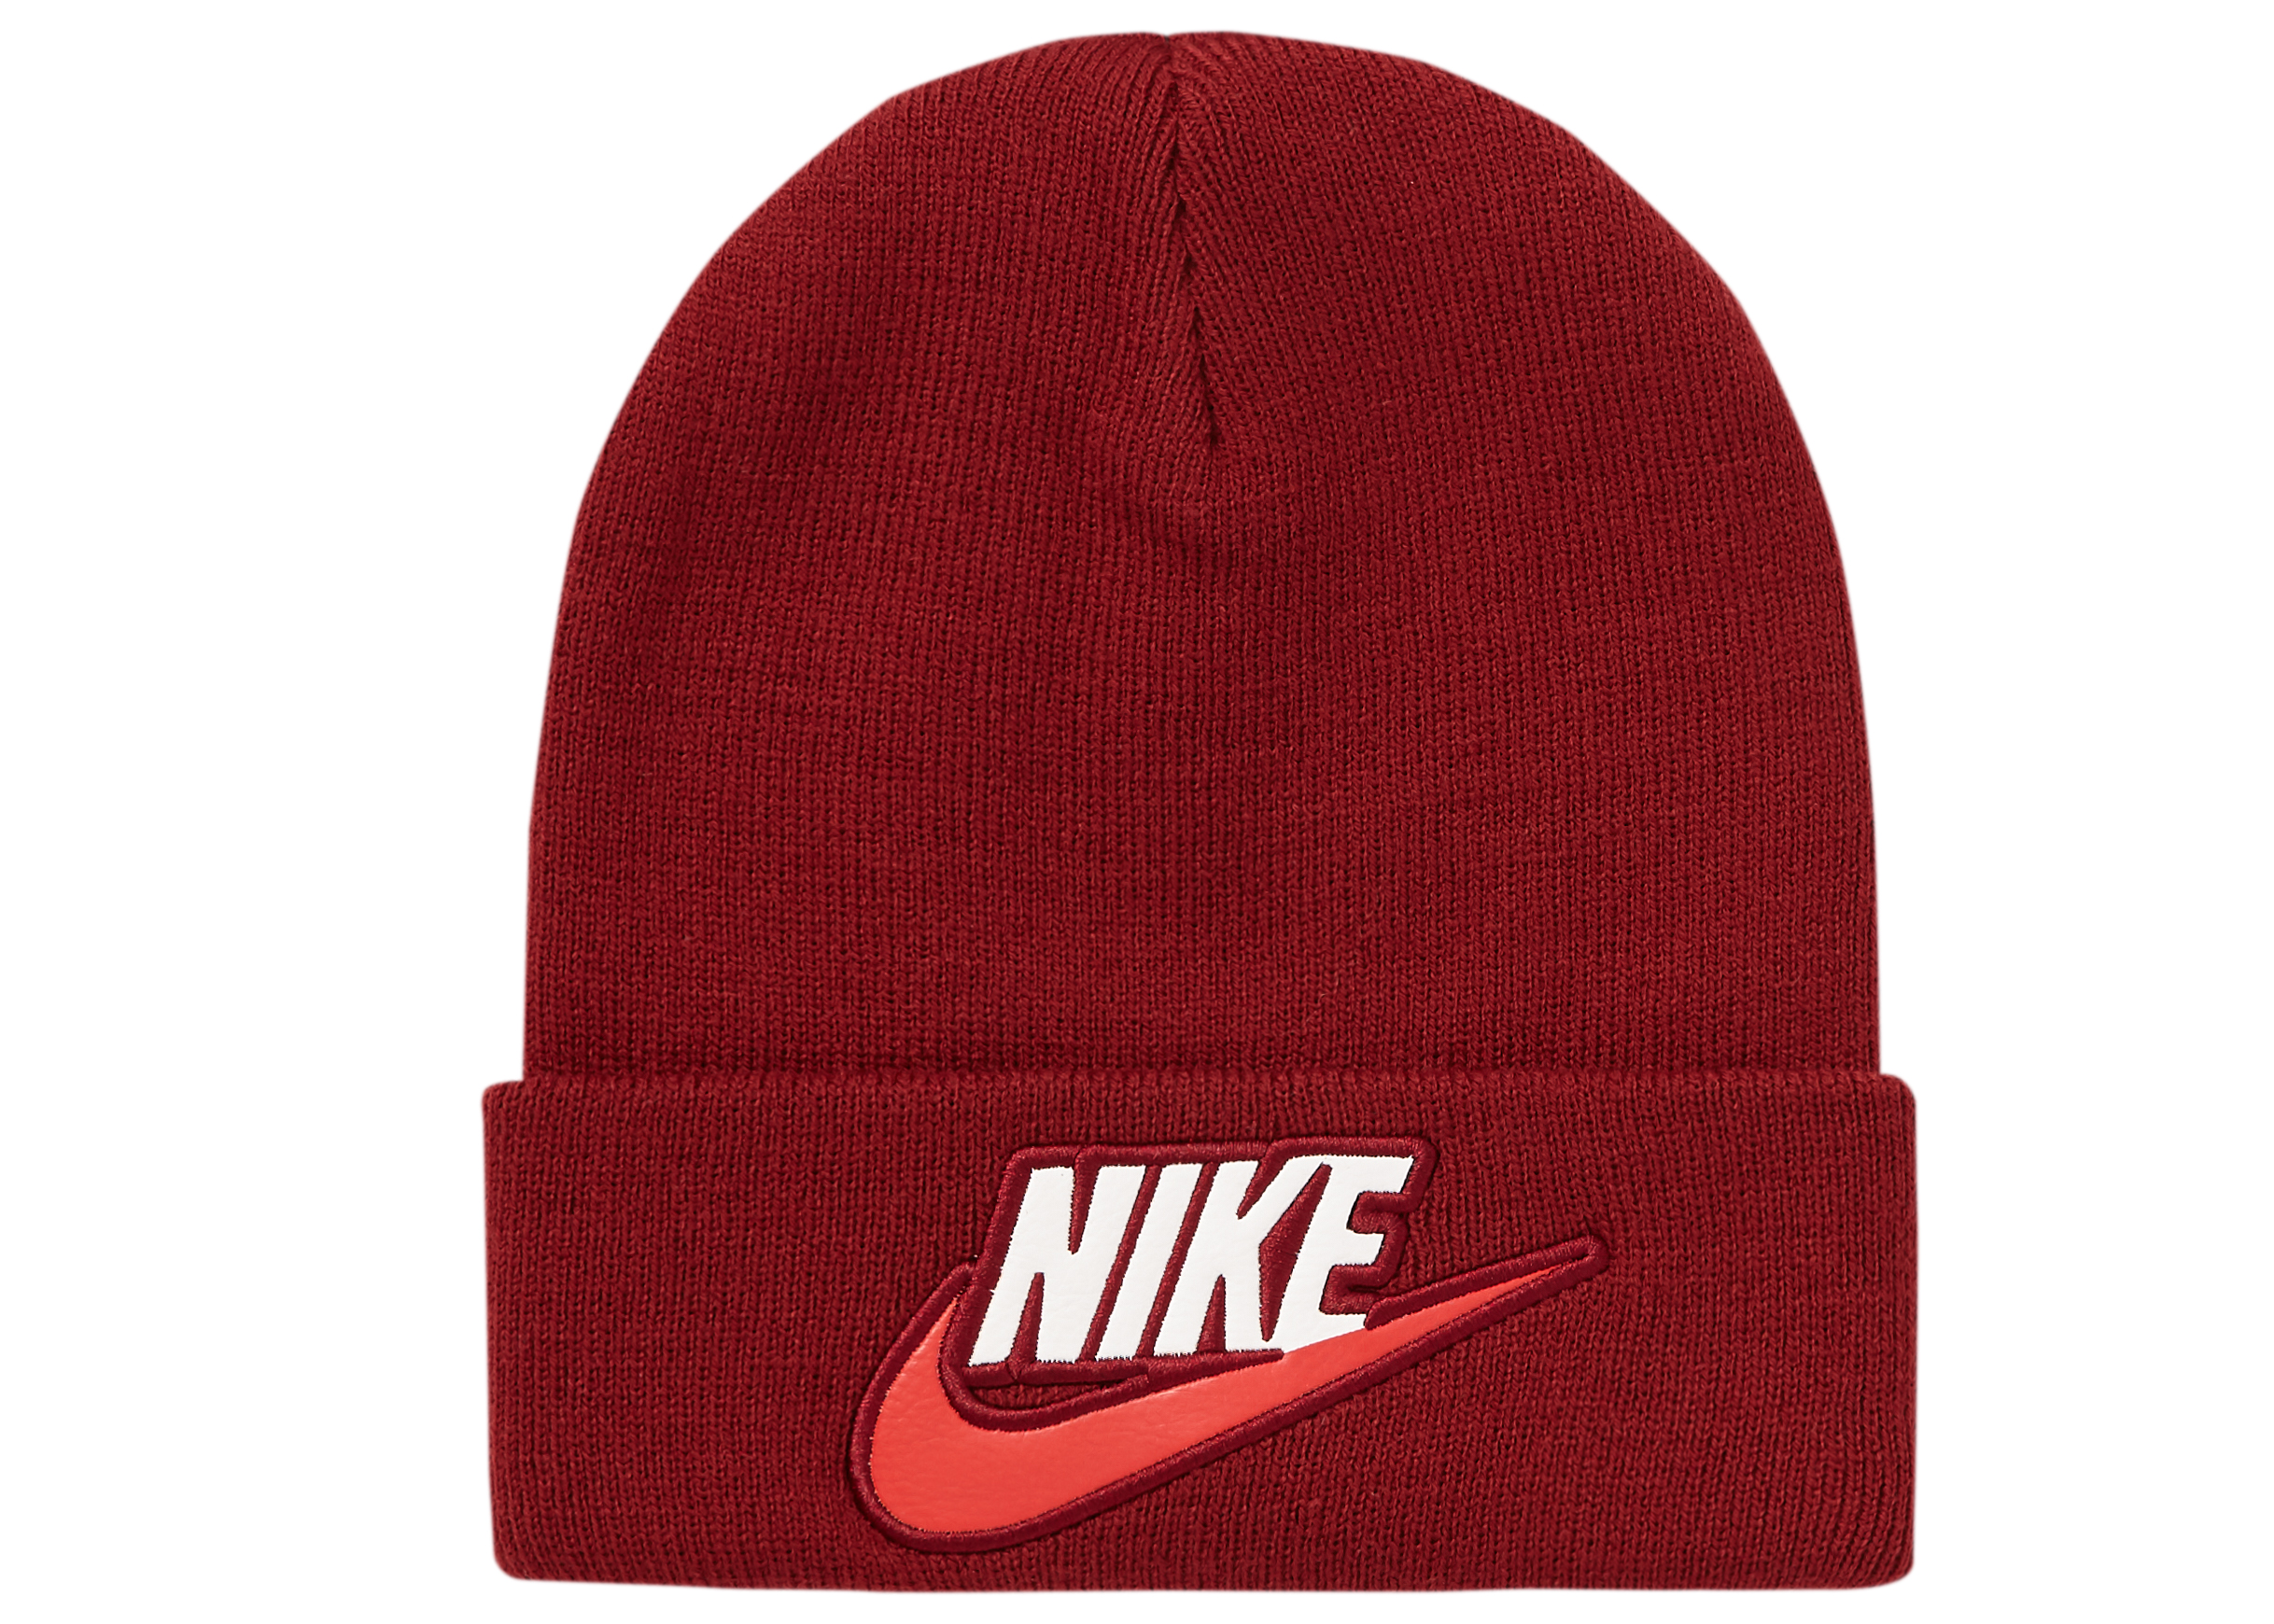 low priced 248ea 8807e switzerland nike beanie kinder schwarz 4364a 3af02  best supreme nike beanie  burgundy 80acd 4e1fa